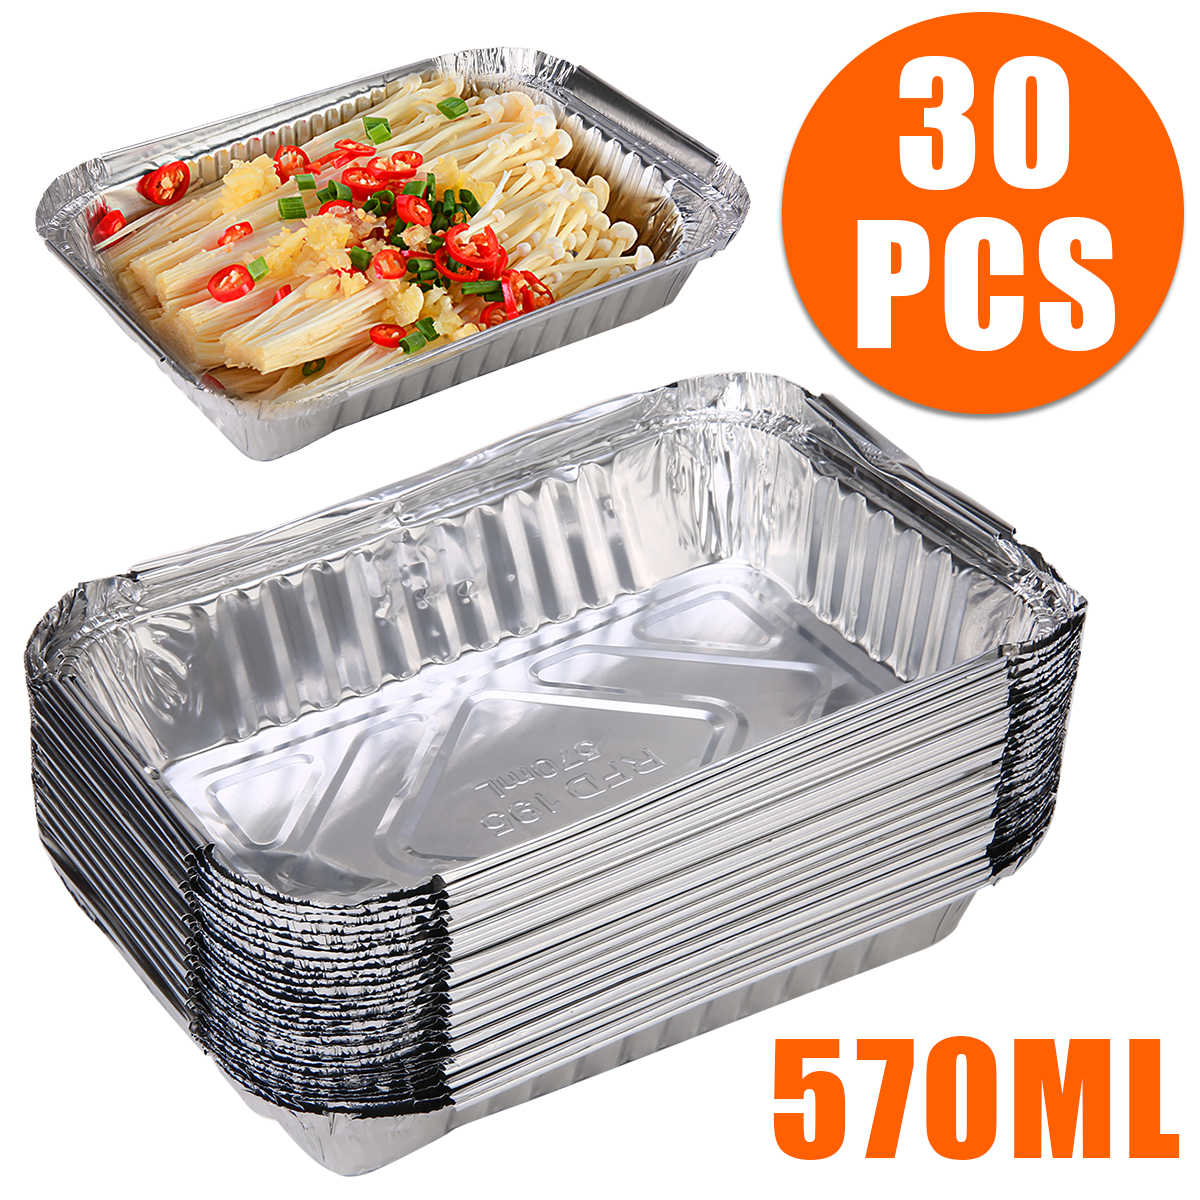 30pcs Disposable BBQ Drip Pans Aluminum Foil Grease Drip Pans Recyclable Grill Catch Tray For Weber Outdoor Supplies